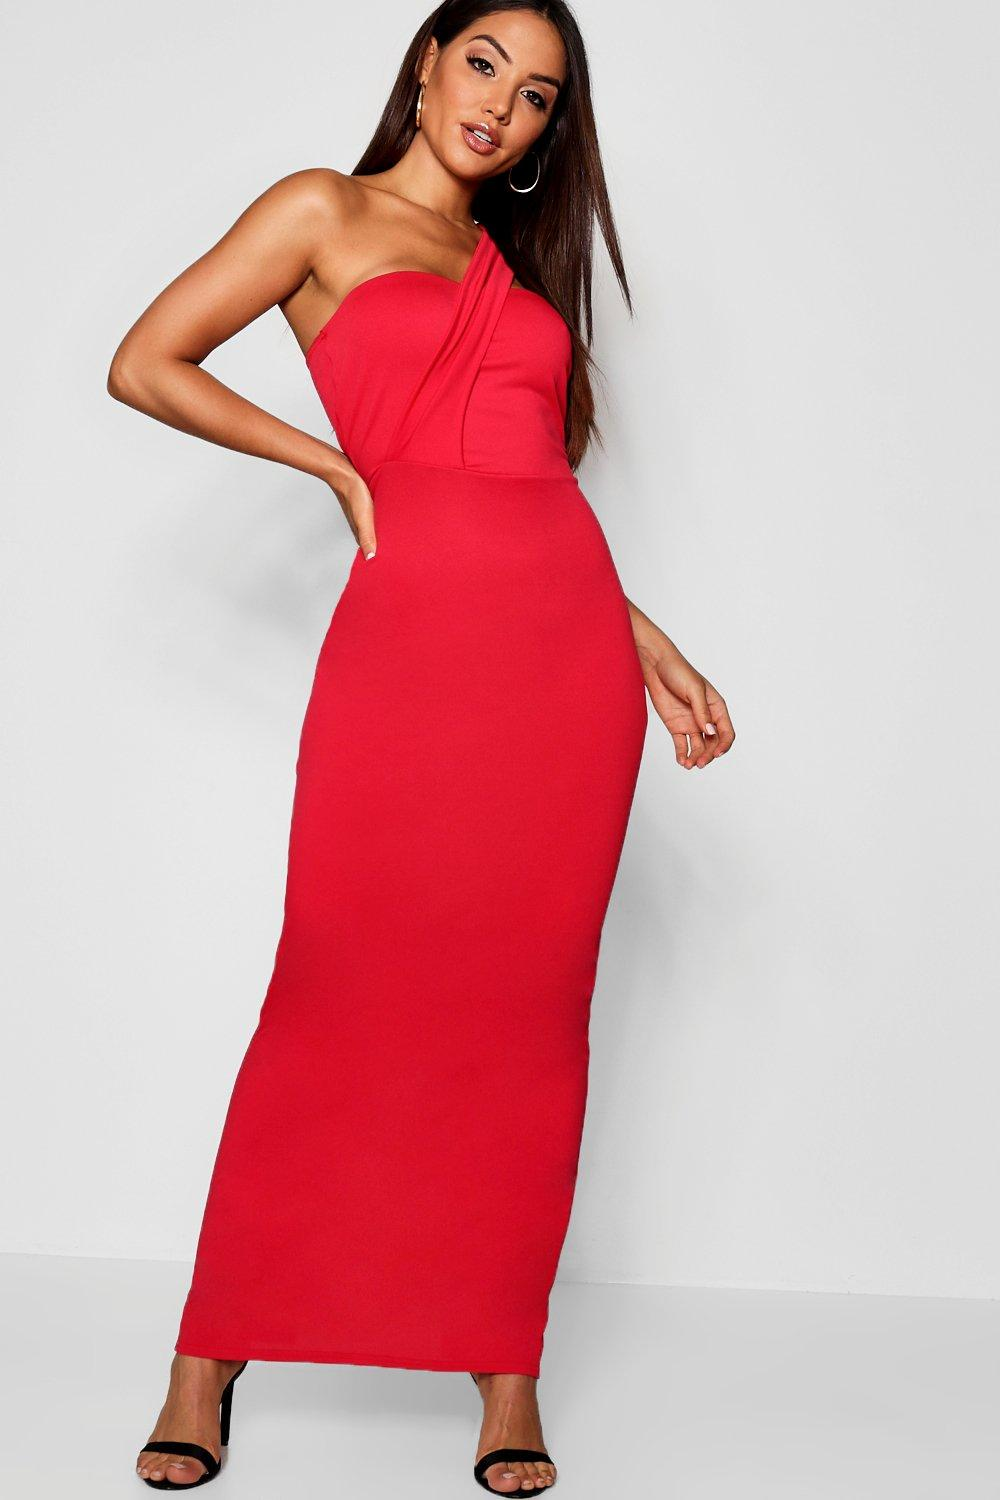 8ee687aea1fcc Womens Red One Shoulder Maxi Dress. Hover to zoom